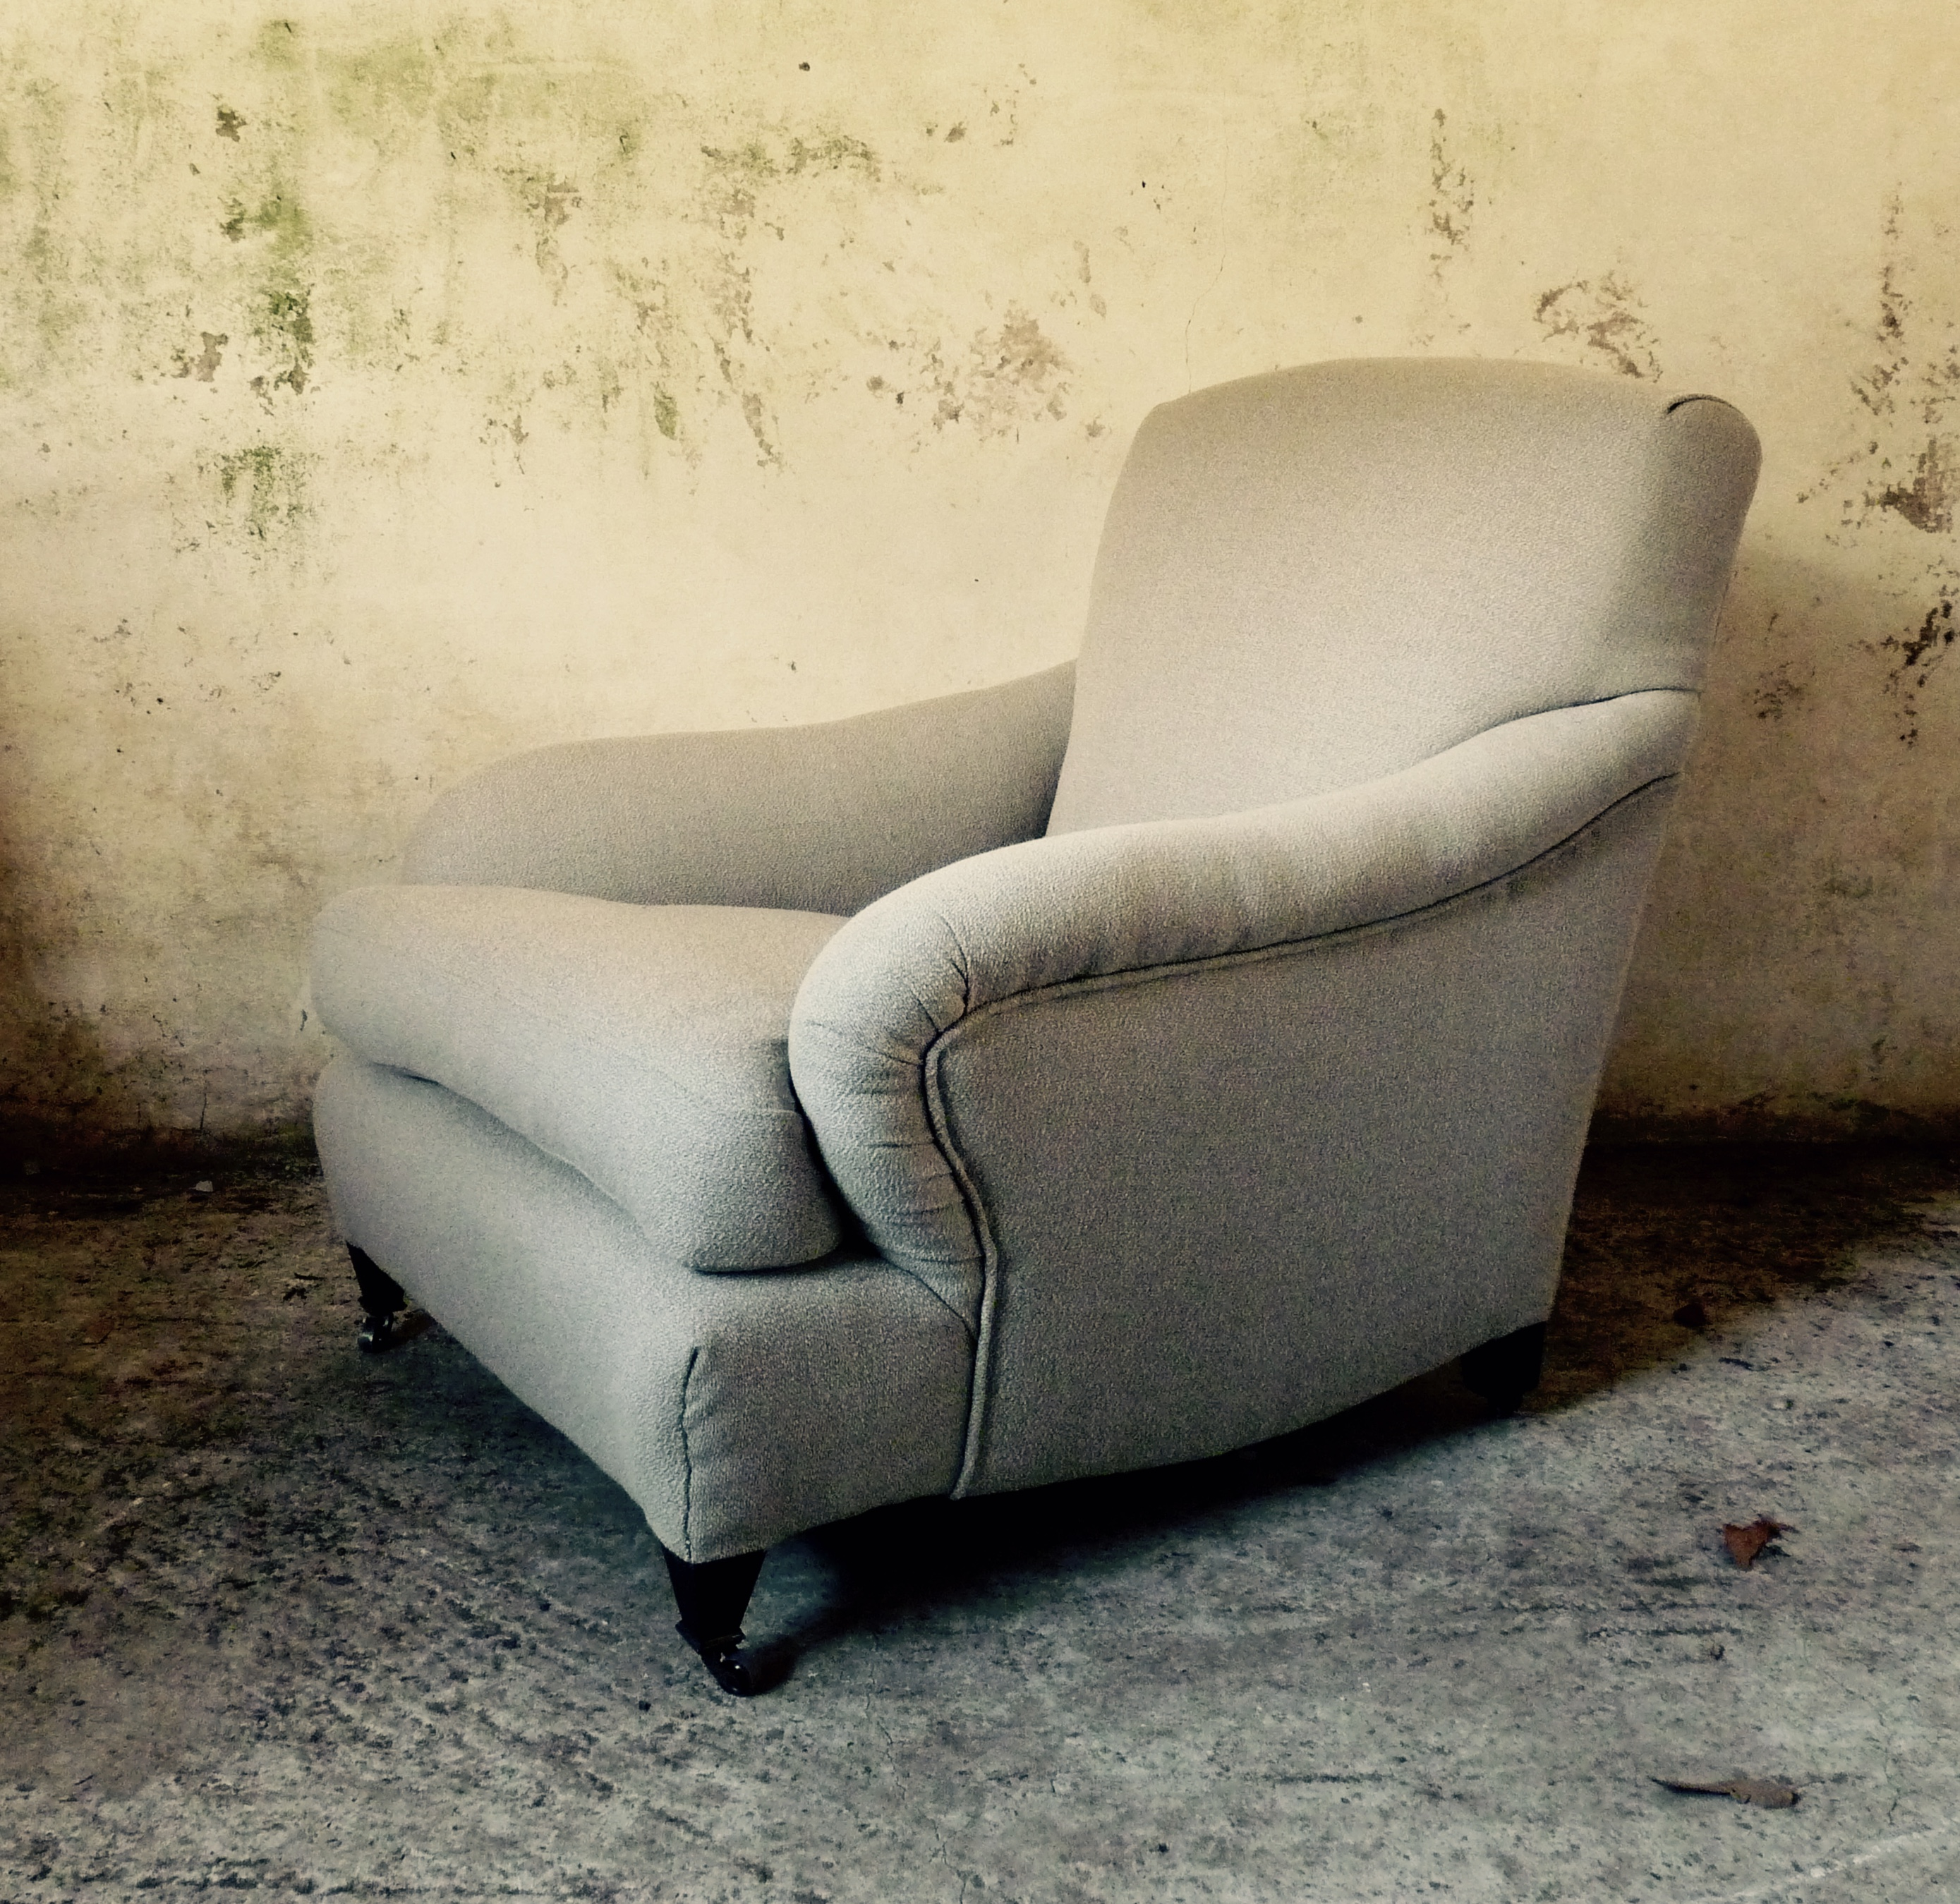 deep seated armchair in the manner of Howard and sons